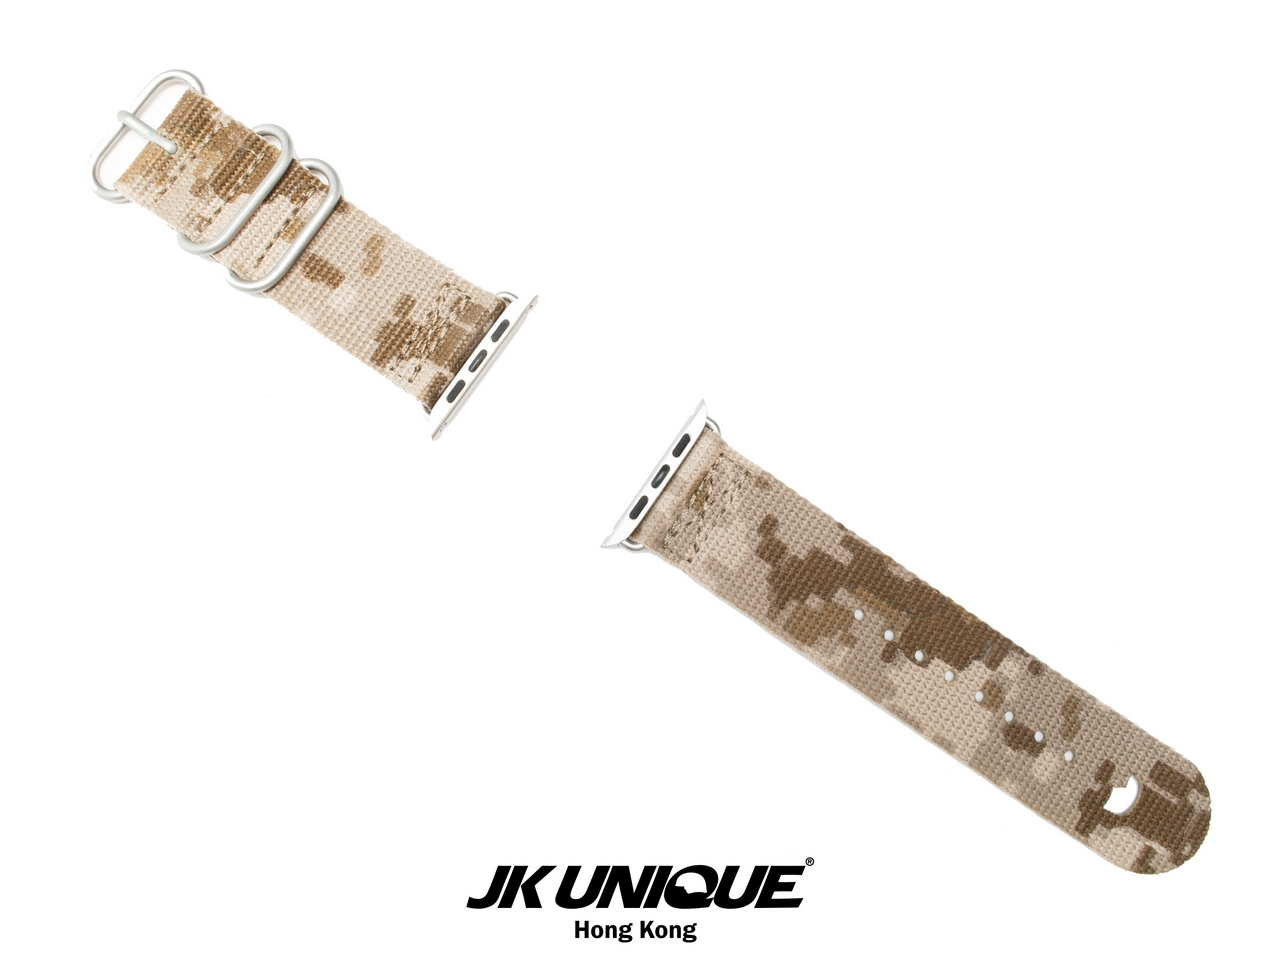 JK-UNIQUE-CAMO-NATO-Apple-Watch-Strap-42mm-SV-AOR1-2 (1280).jpg